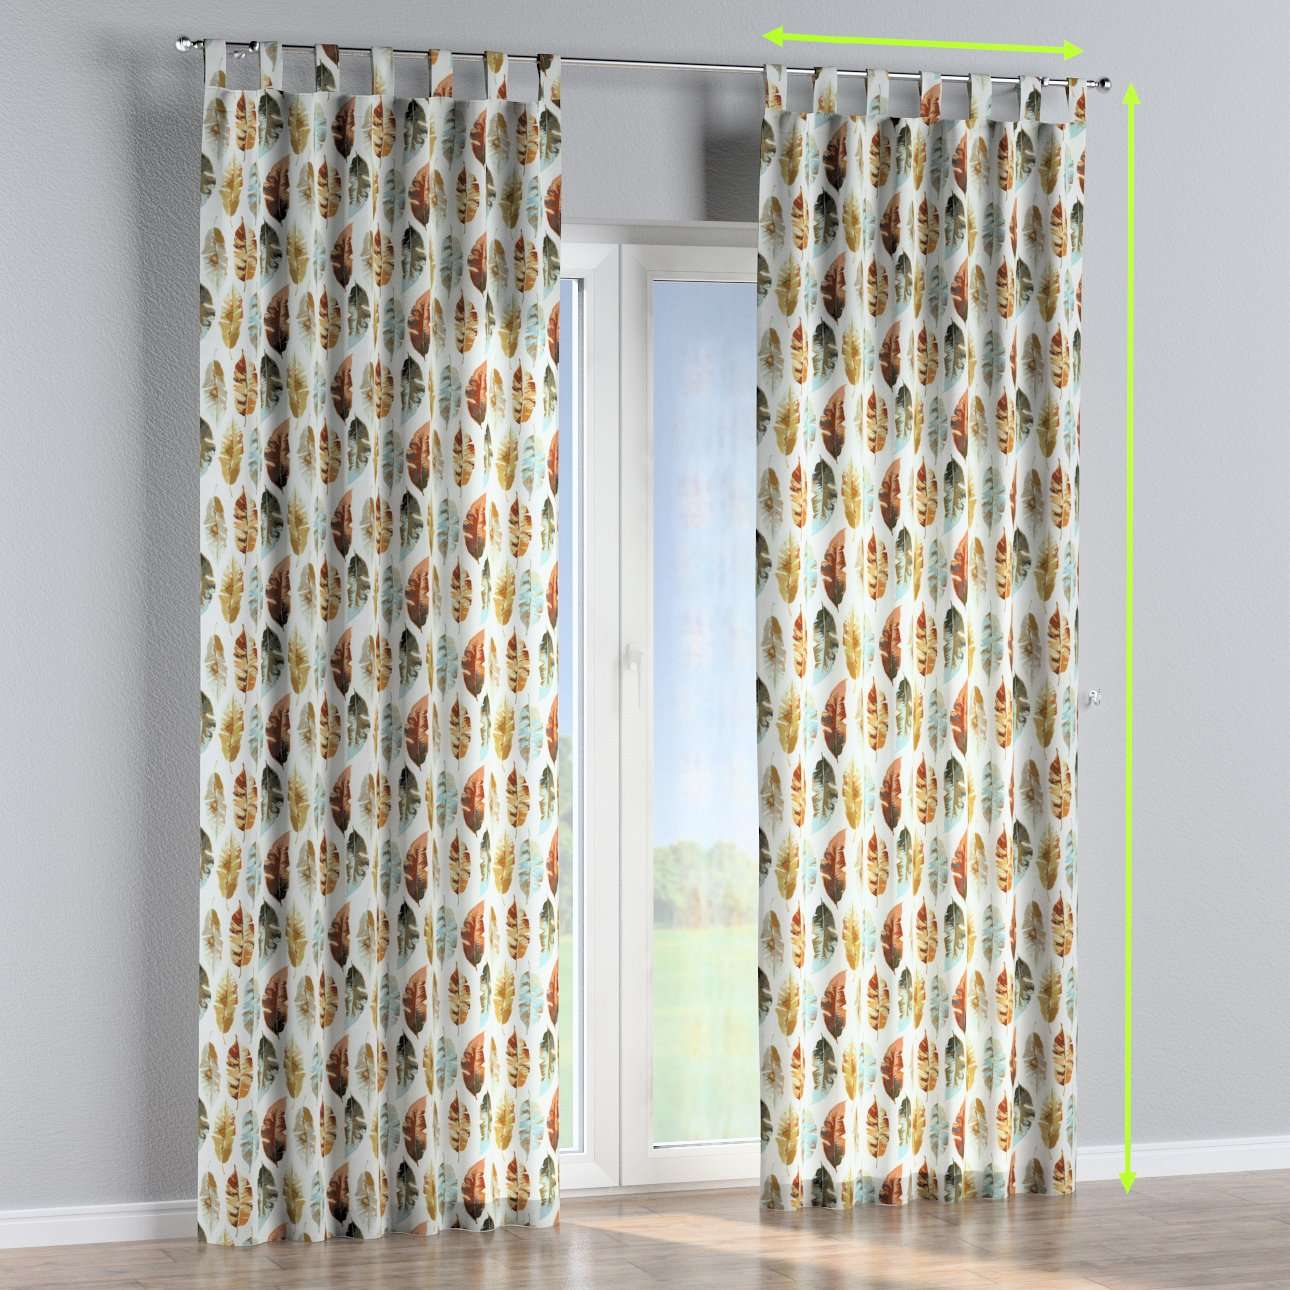 Tab top curtains in collection Urban Jungle, fabric: 141-43